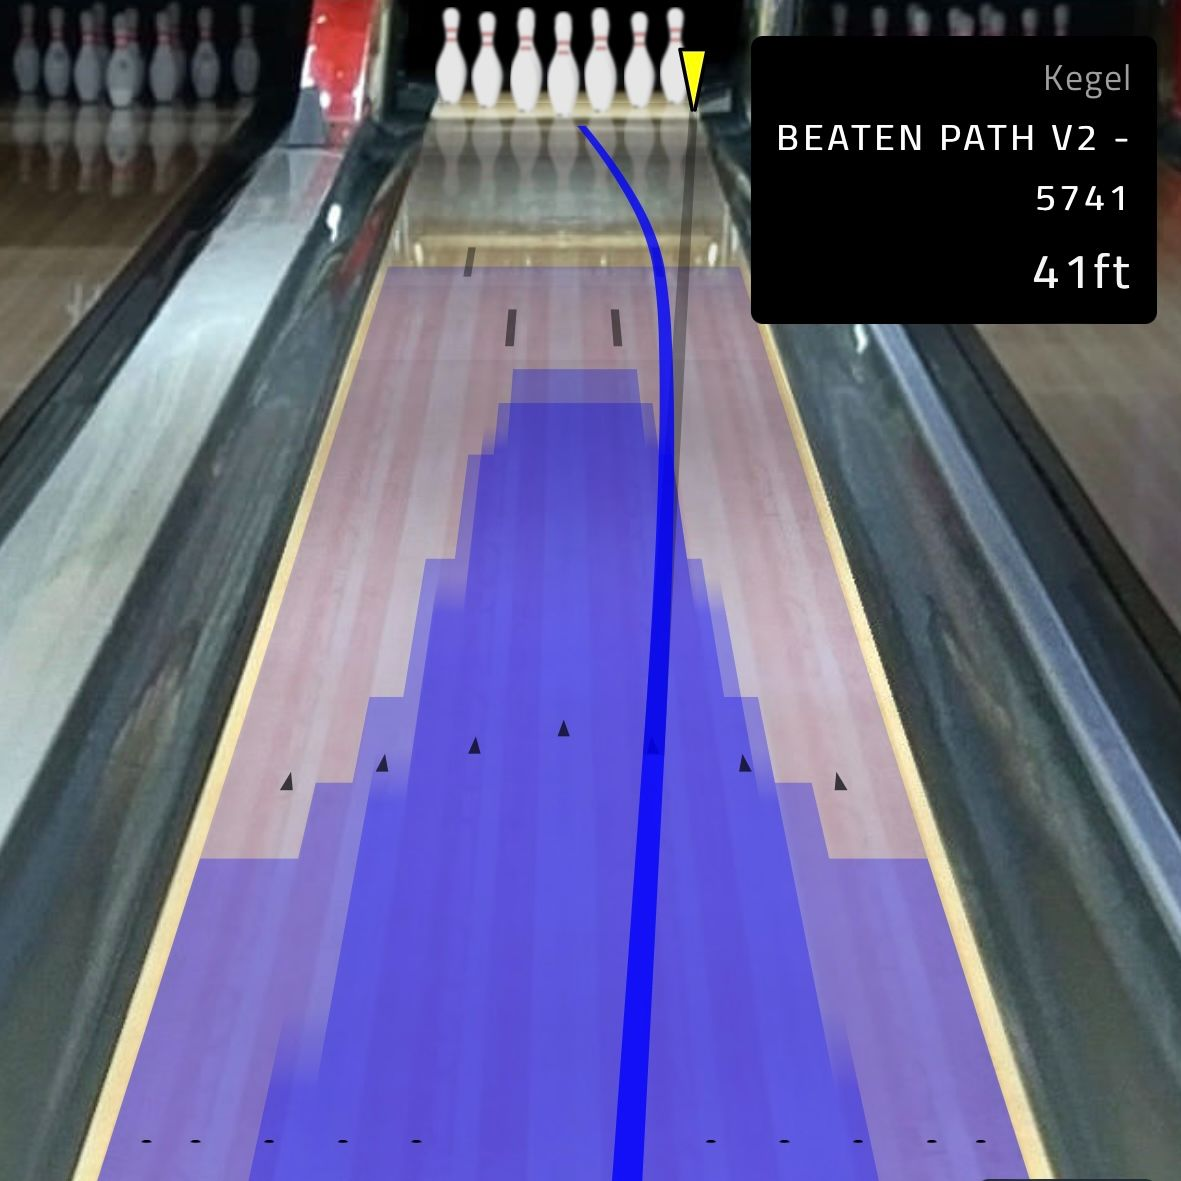 Angles and Targeting 3D bowler's eye view in Tenpin Toolkit